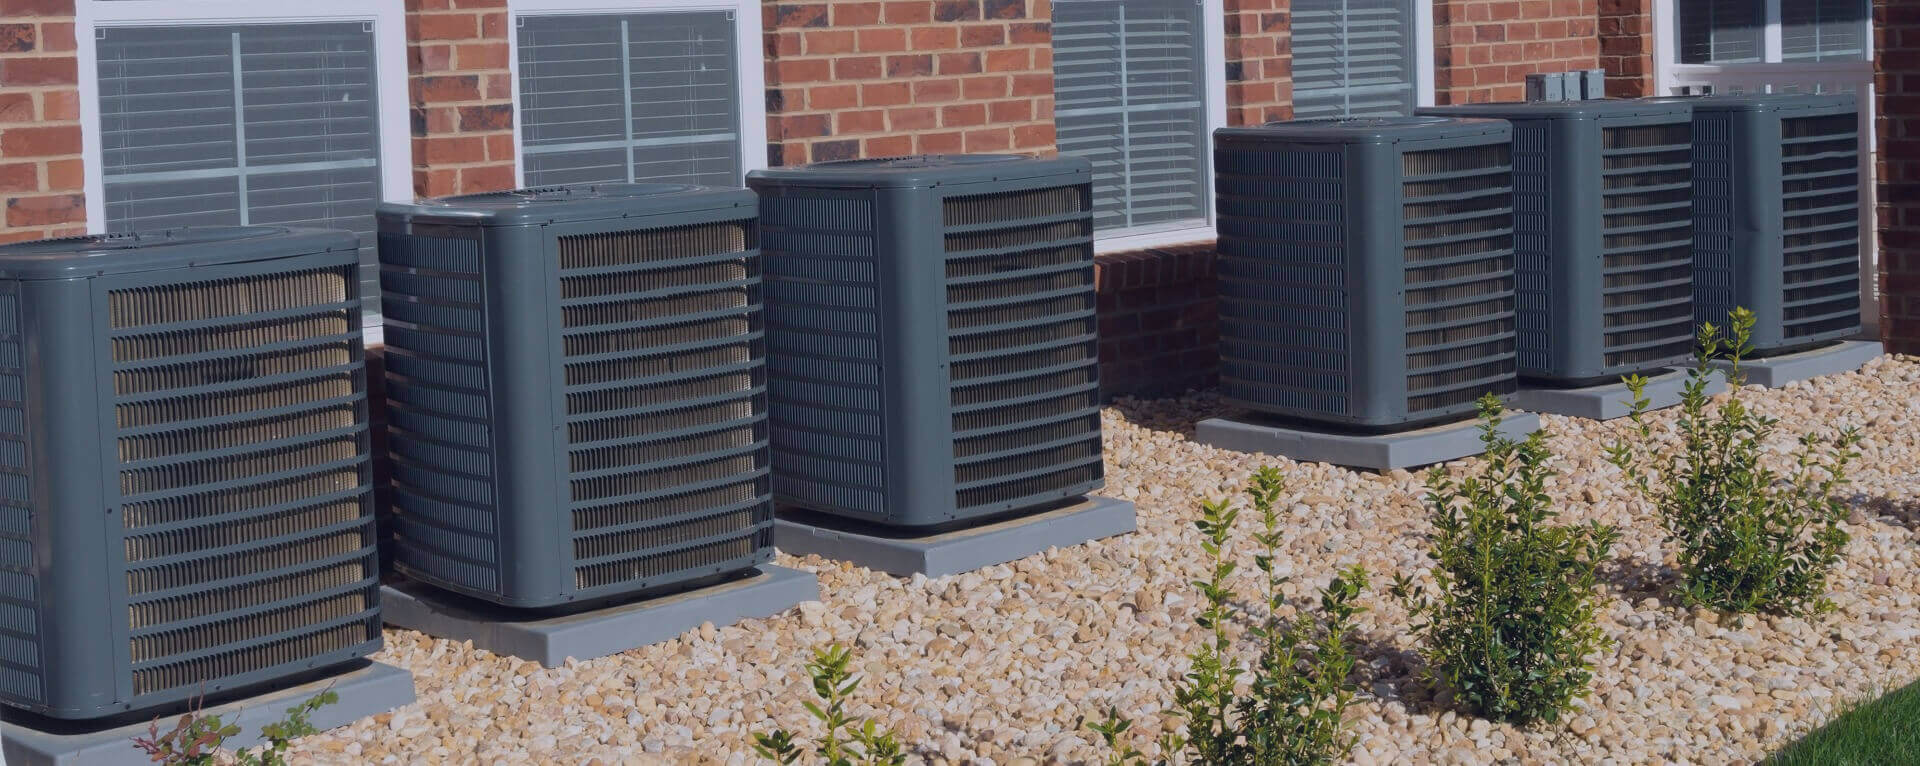 Commercial A/C Systems